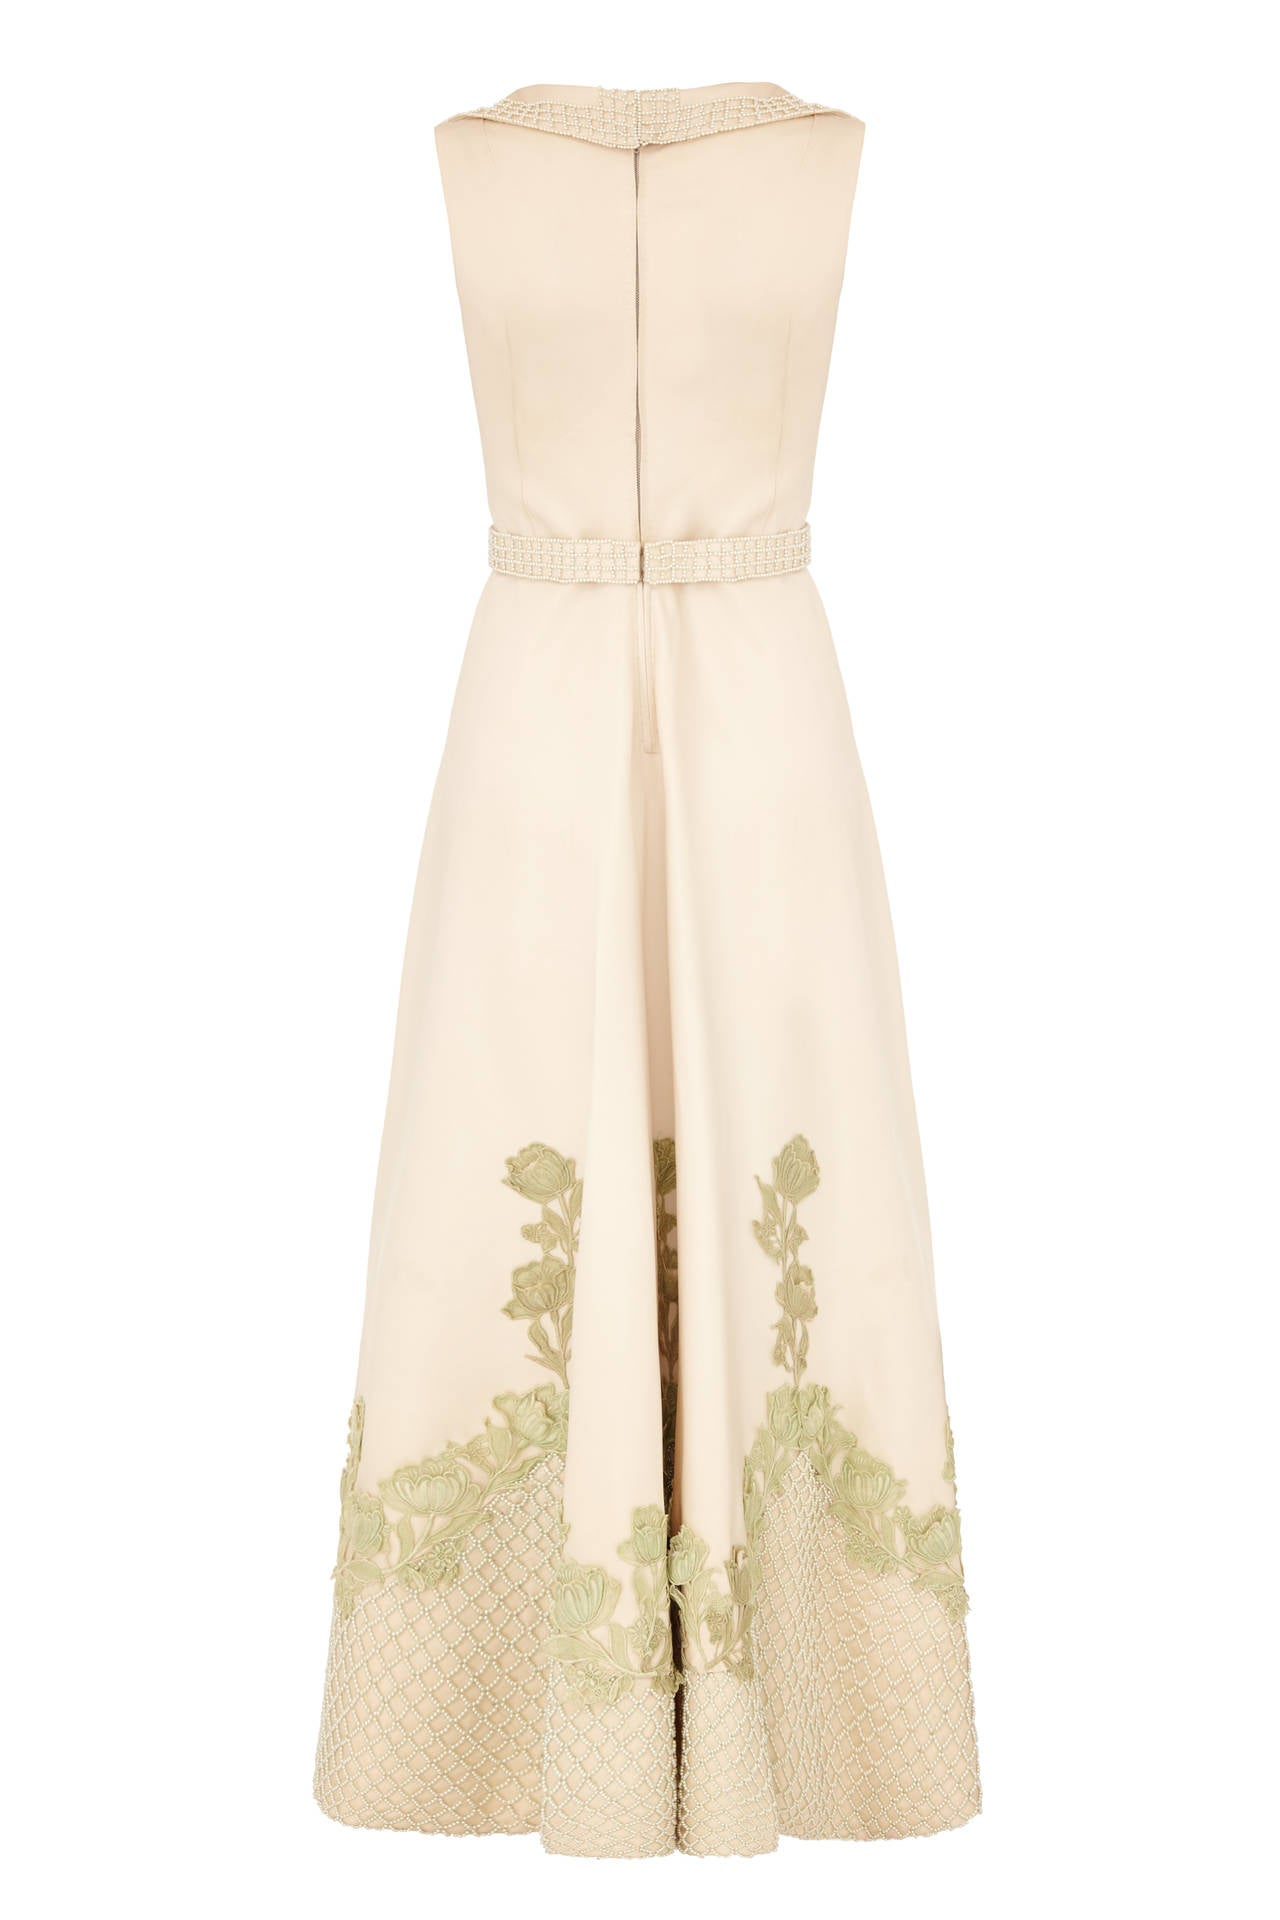 Exceptional vintage 1950s custom made heavy cream silk gown with pale green floral appliques and pearl beaded lattice work.  This sleeveless, waisted dress features a deep V neckline with collar and comes with original matching beaded belt.  It is